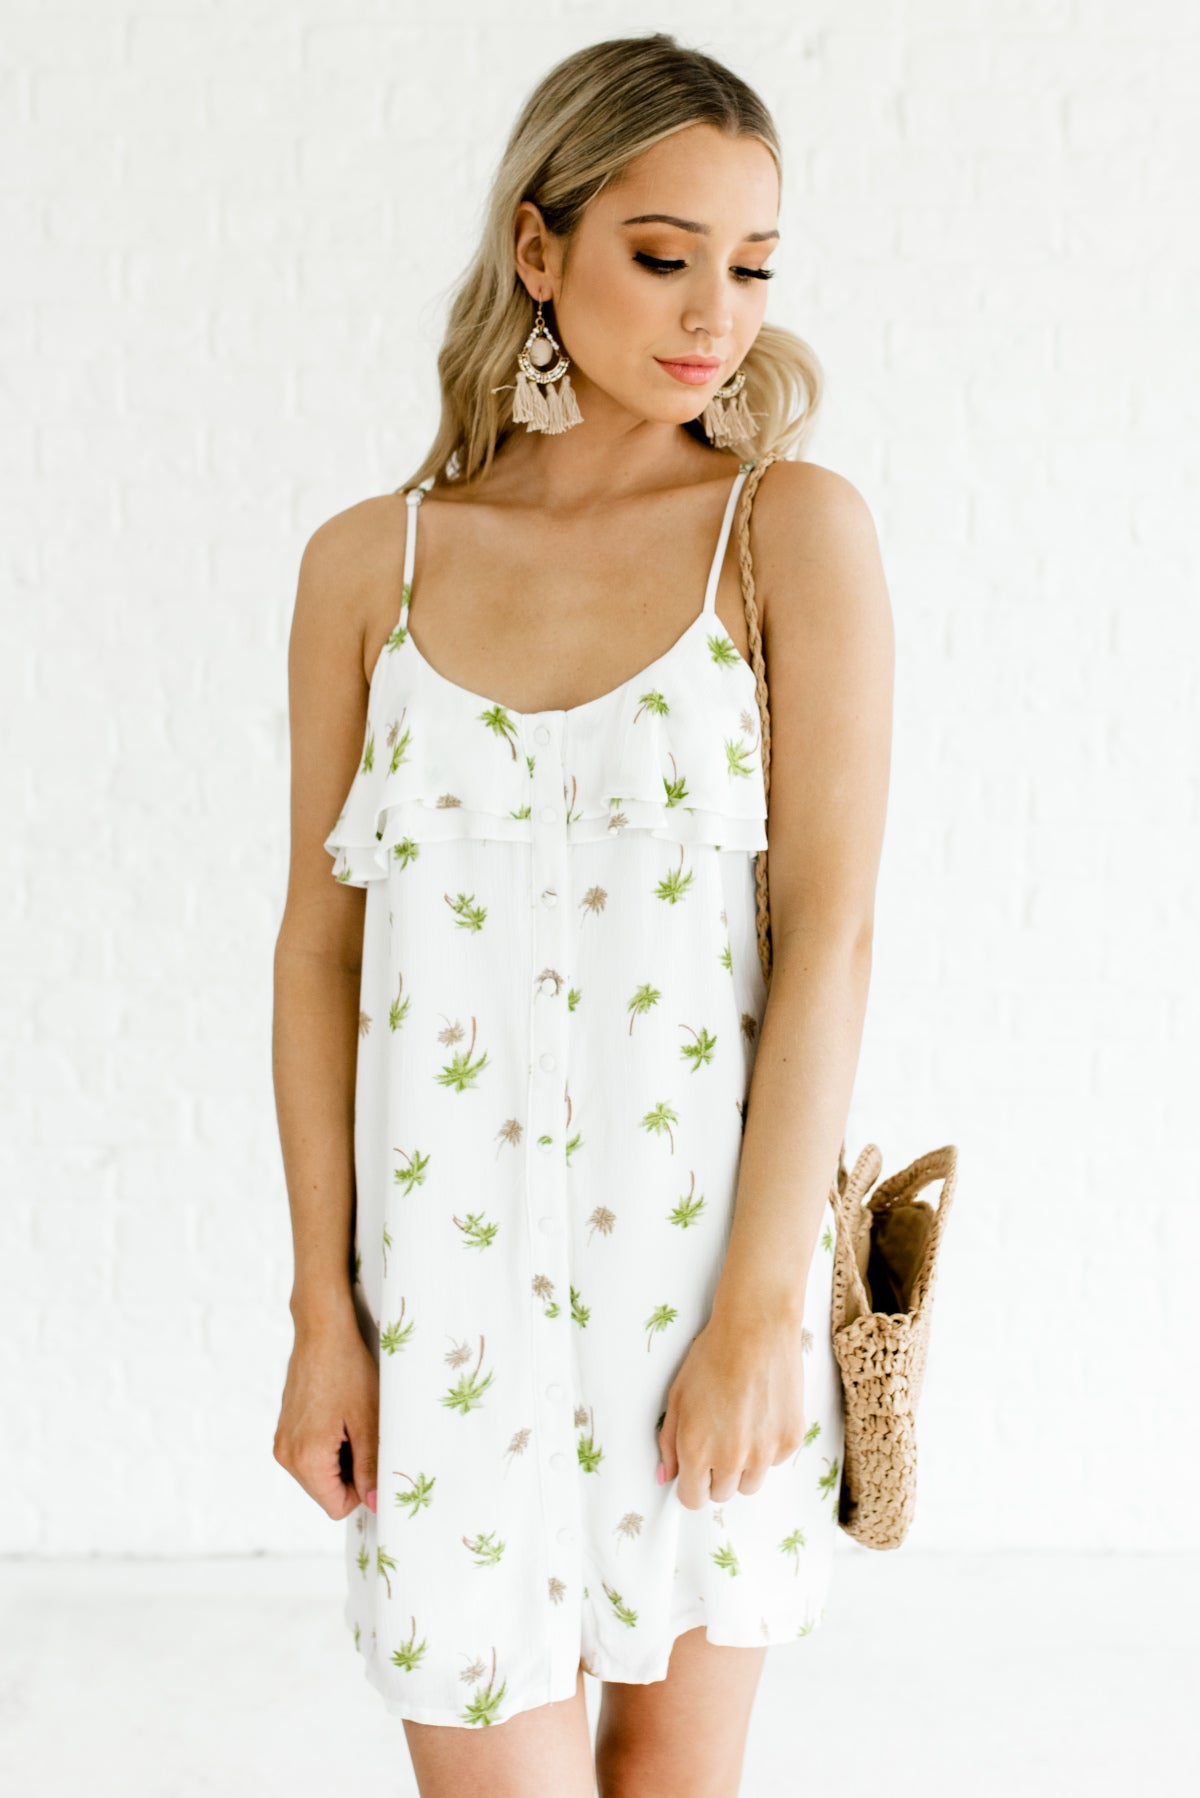 White Green and Brown Palm Tree Print Boutique Dresses for Women